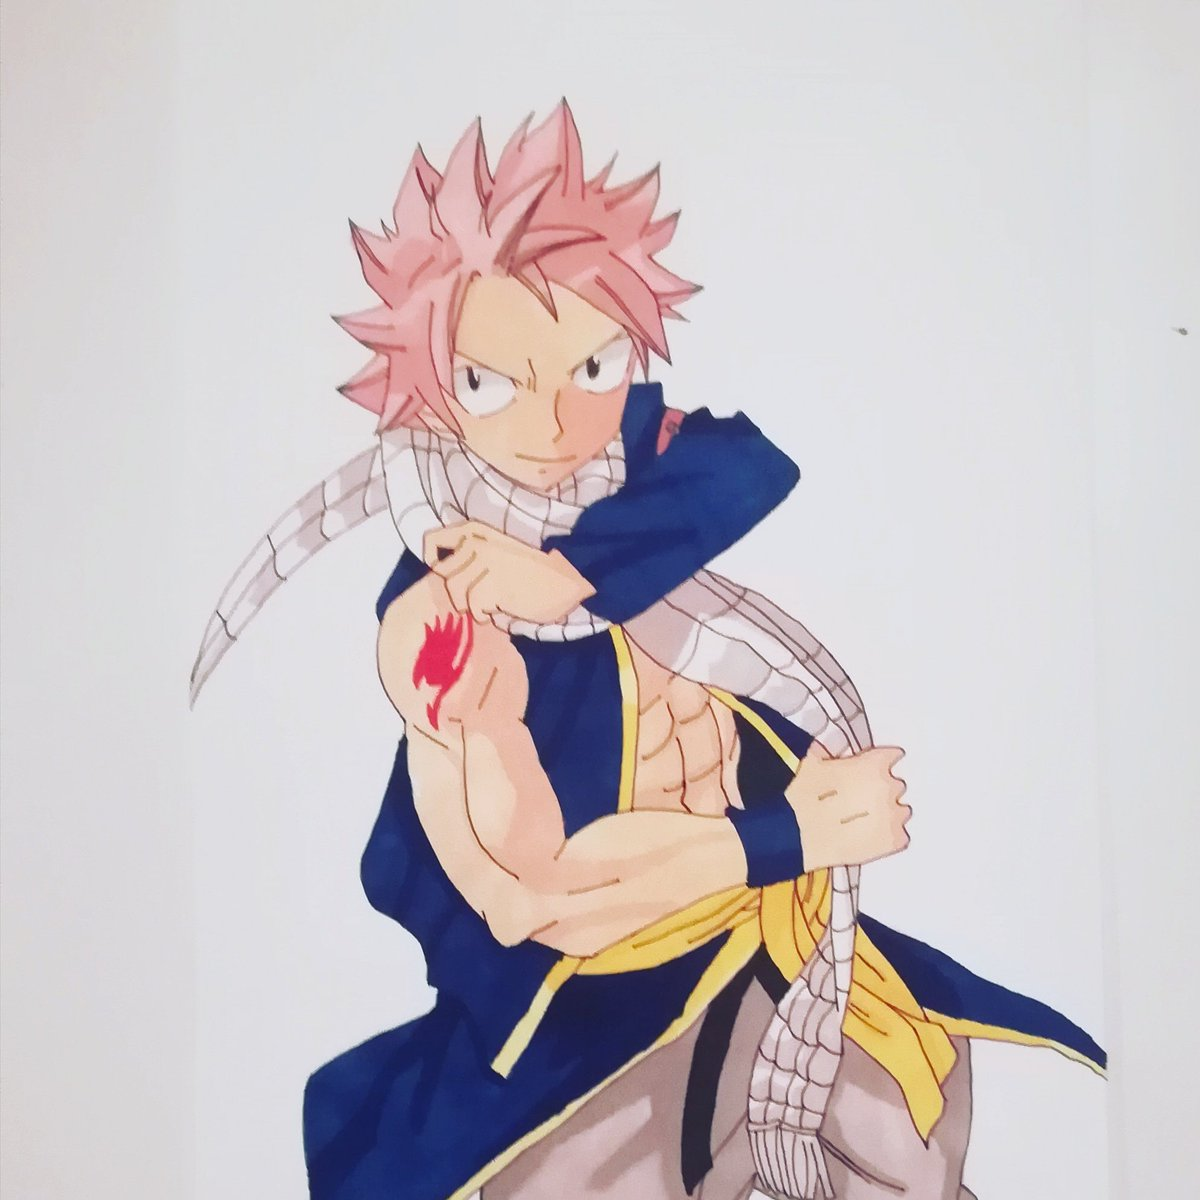 Mounch Draw On Twitter Natsu Fairy Tail Dessin Manga